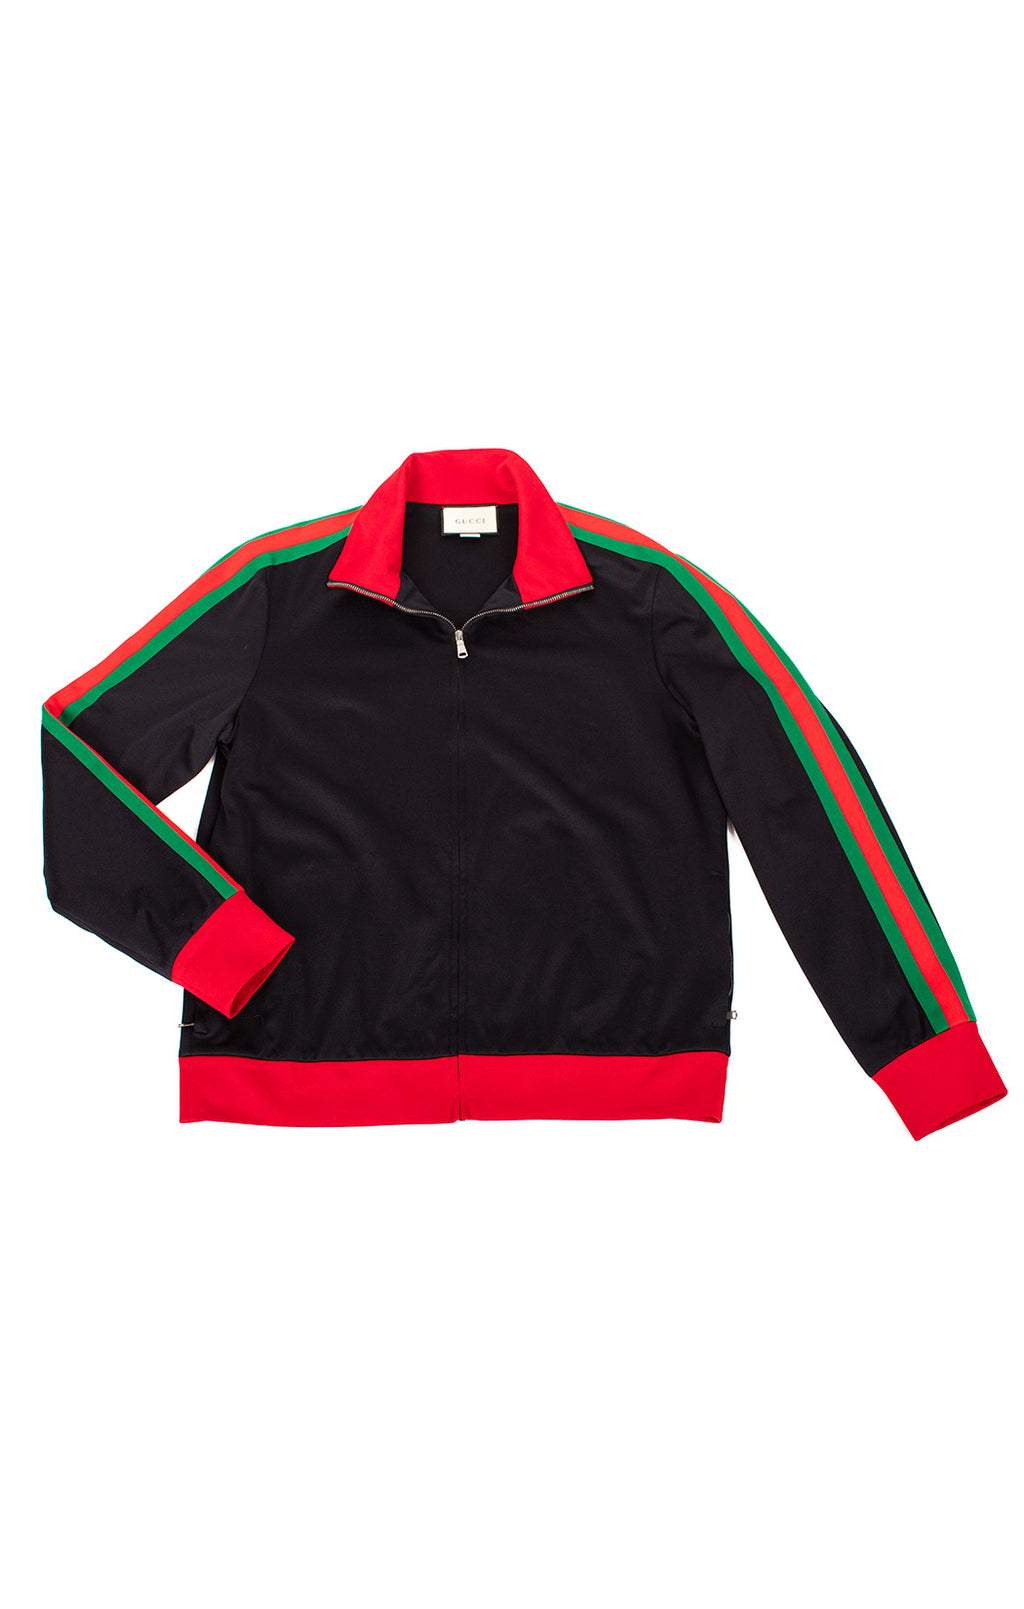 Front view of GUCCI Track jacket Size: XXL